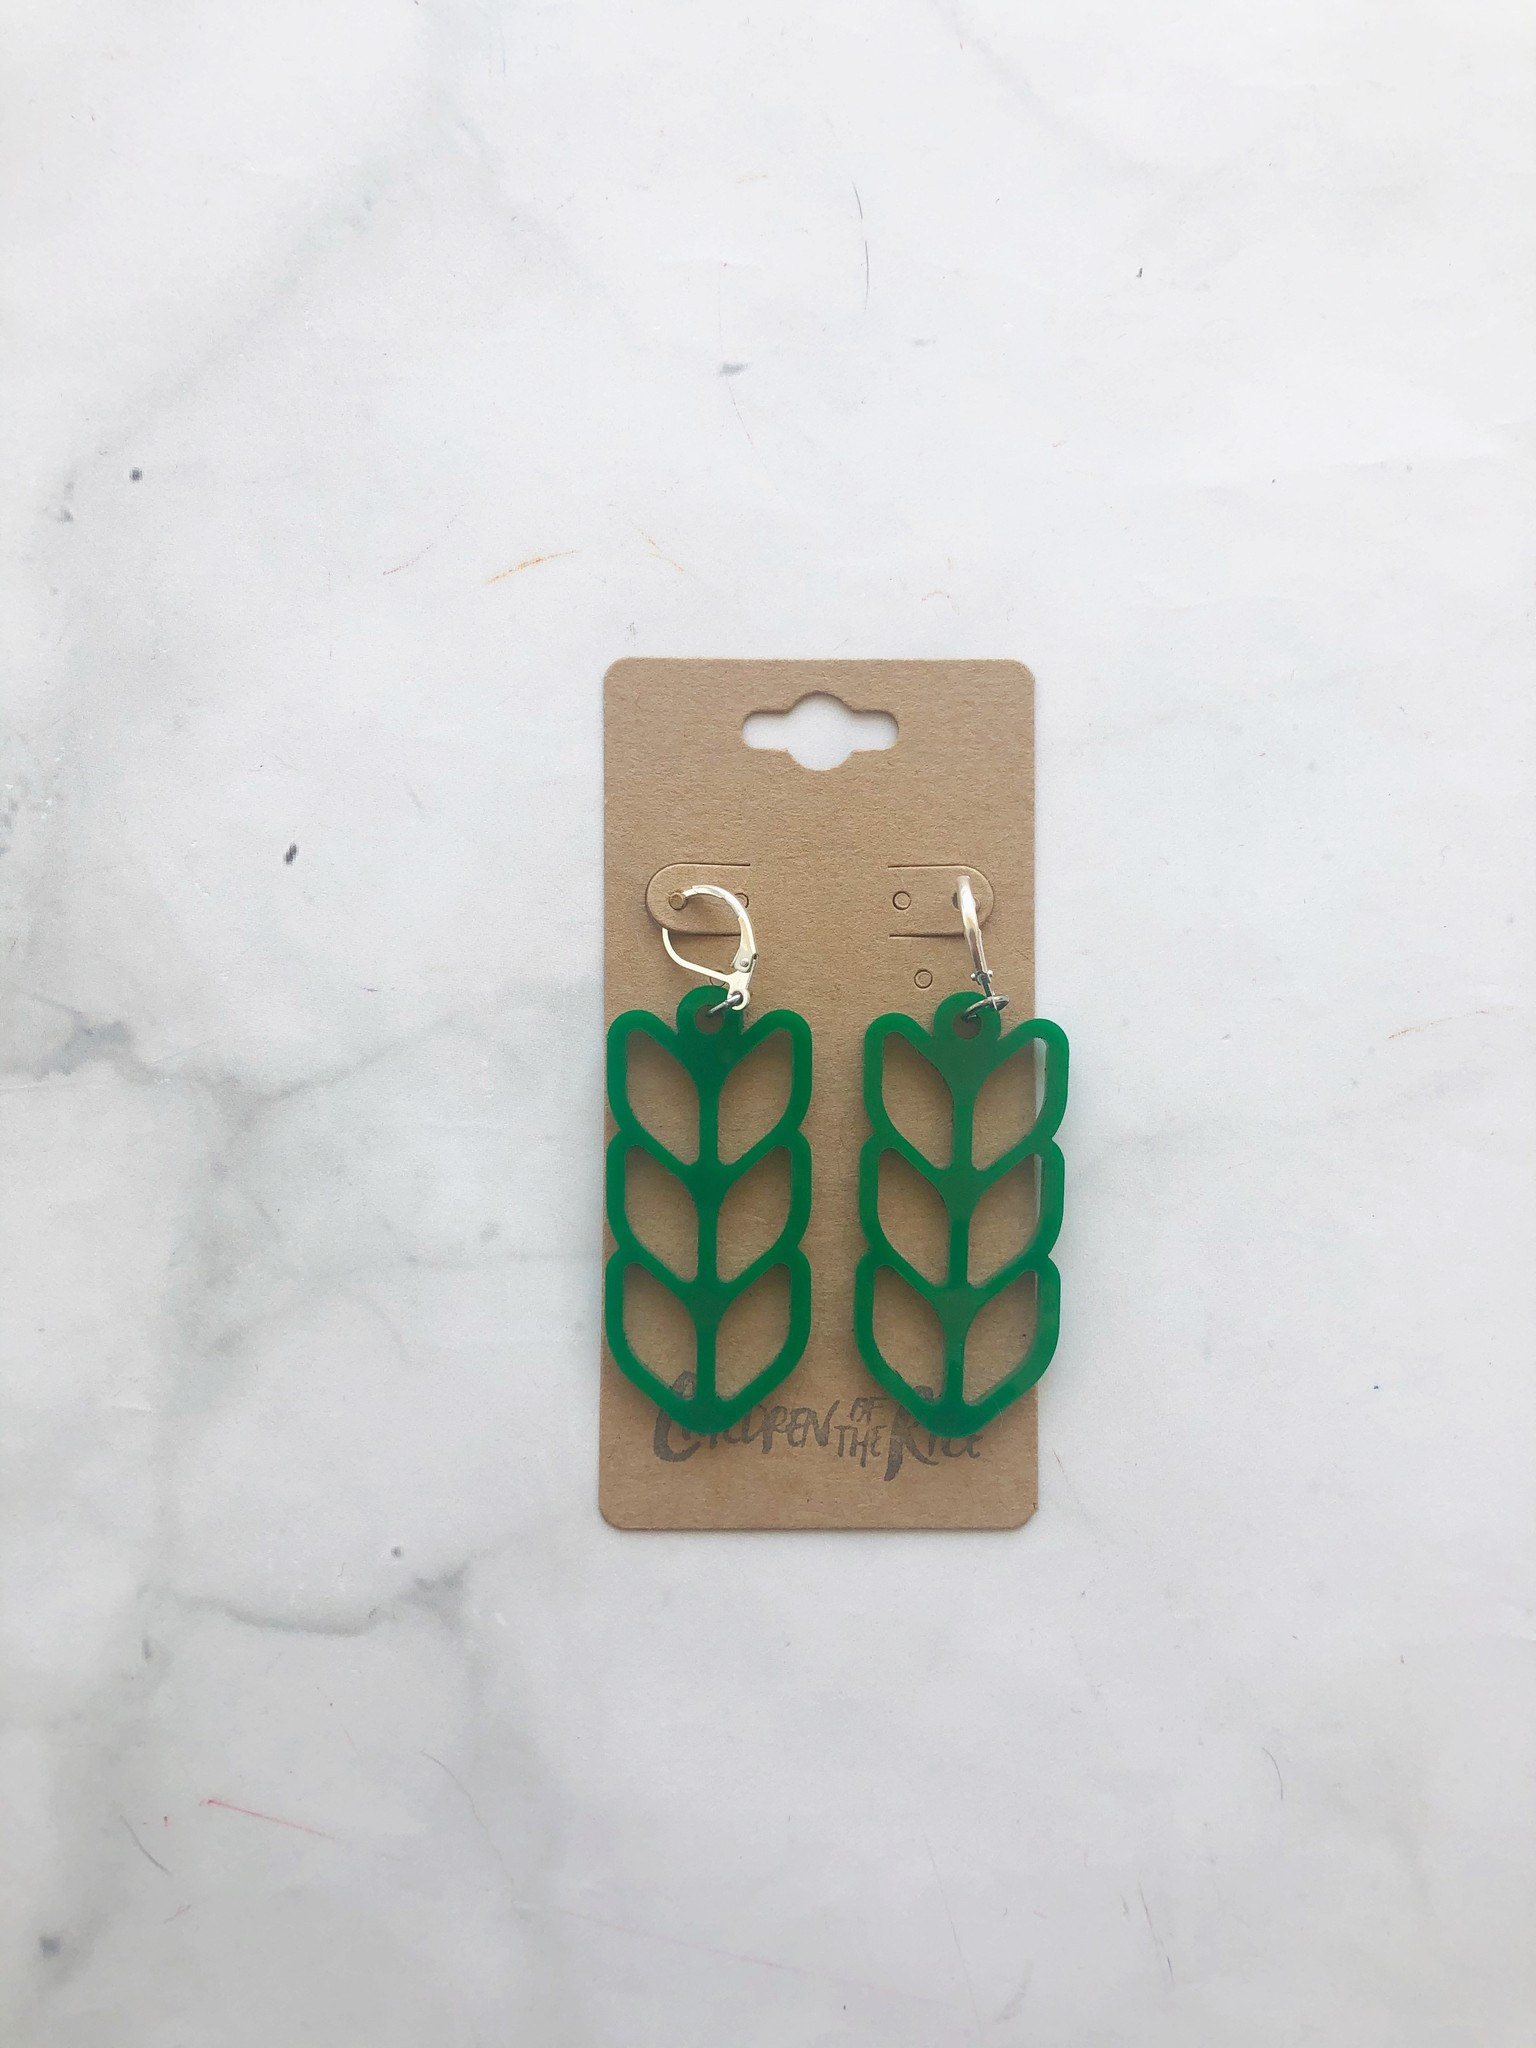 Children of the Rice Green Pretty Knitting Large Earring from Children of the Rice